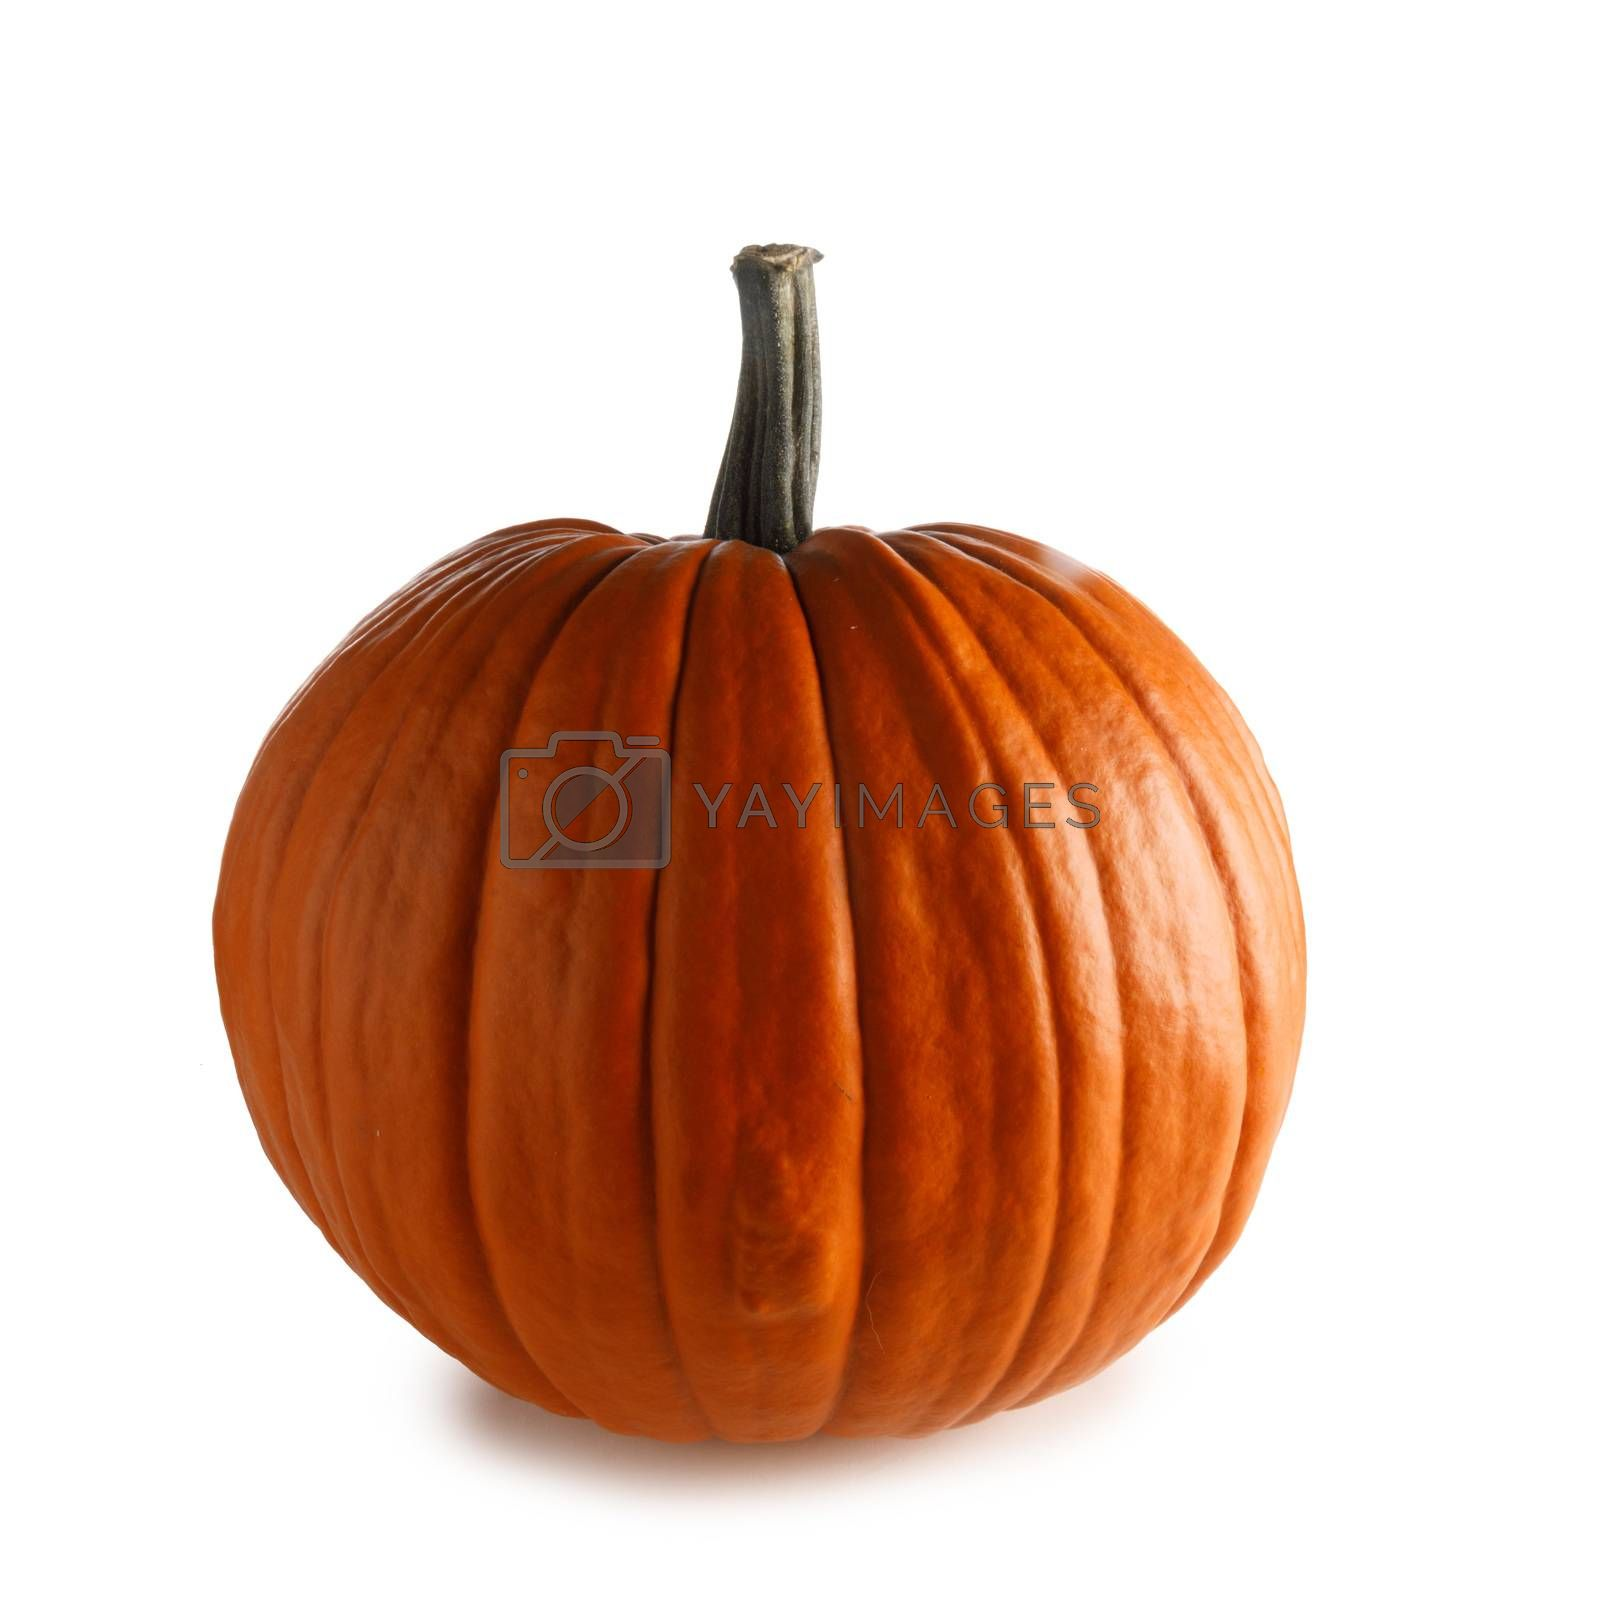 One perfect orange pumpkin closeup isolated on white background